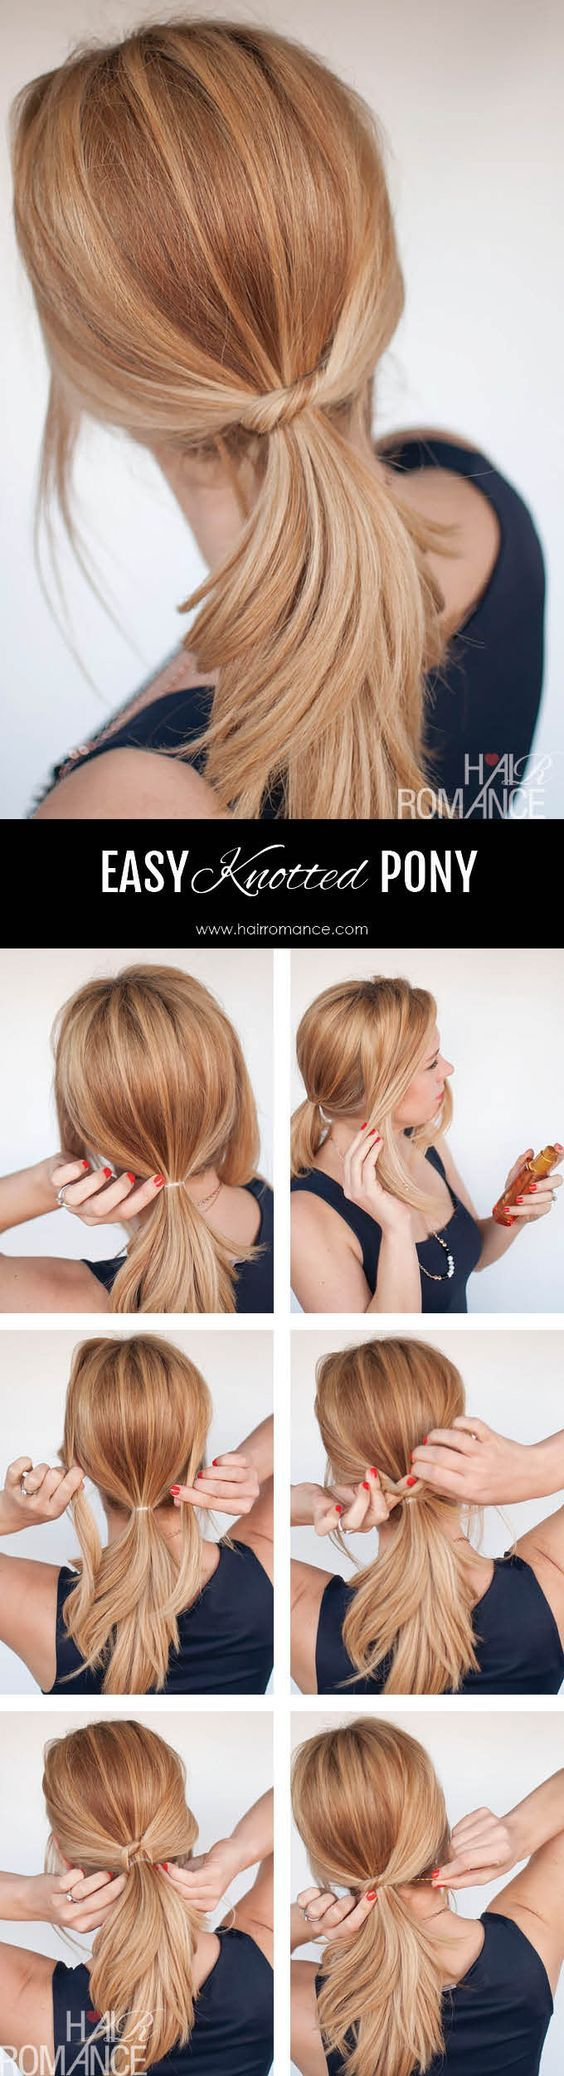 Easy knotted pony hairstyle